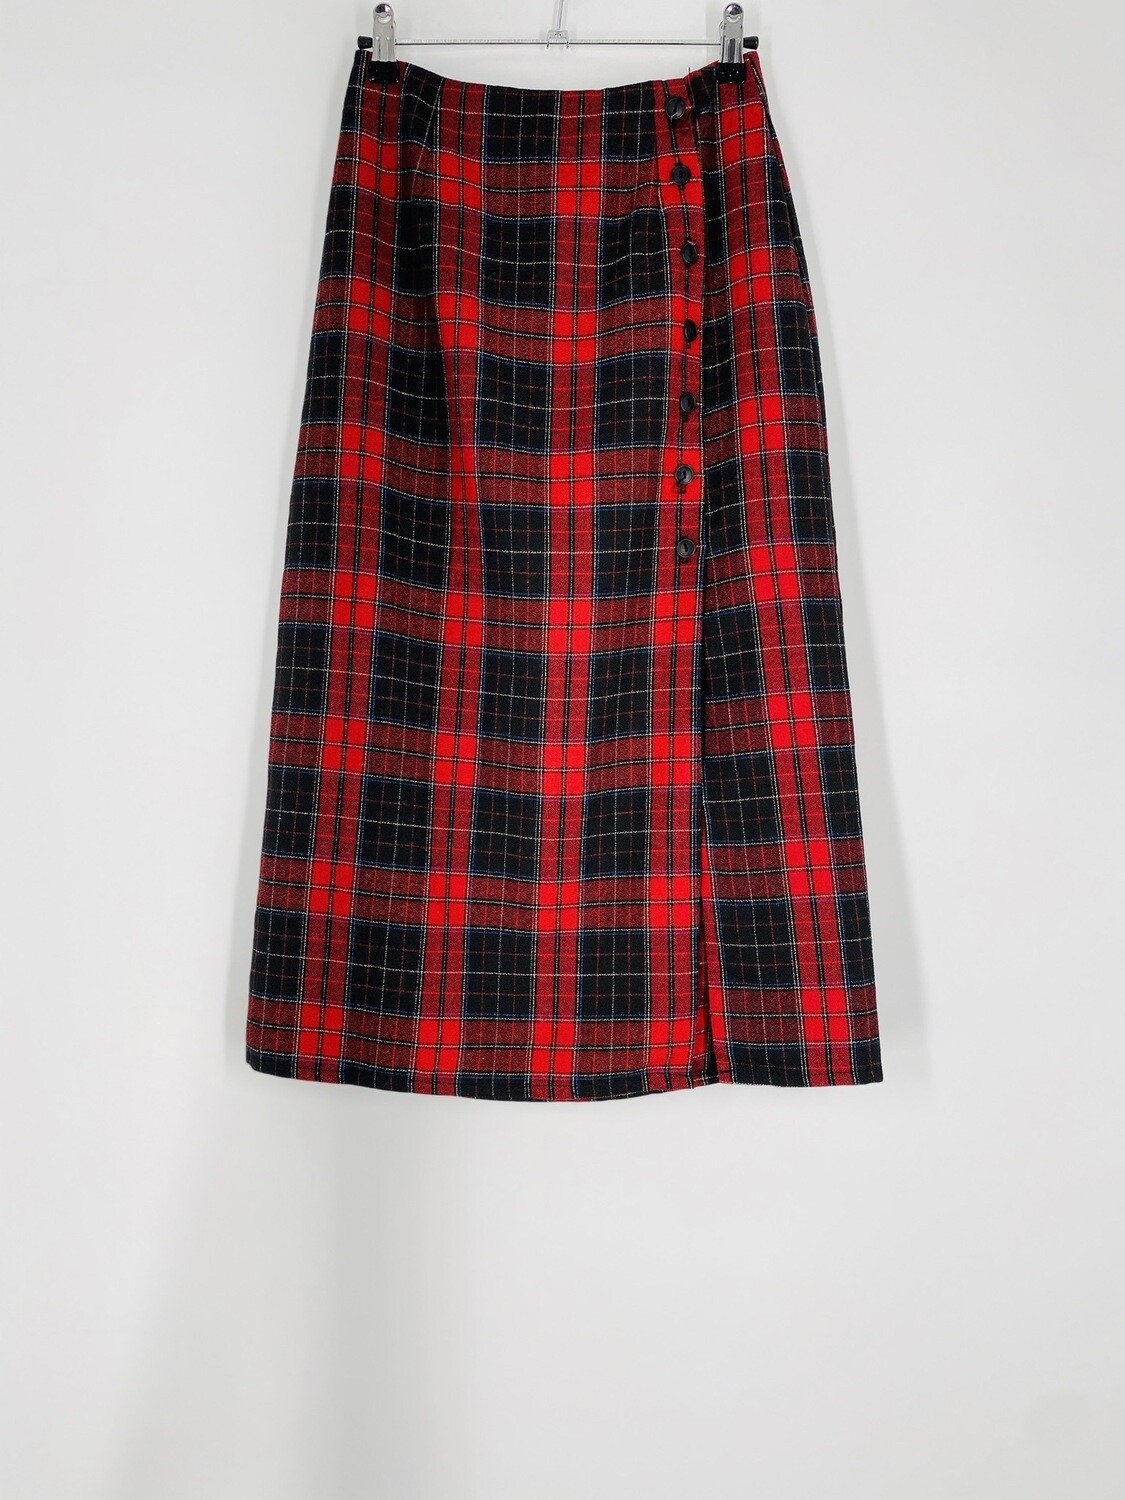 Ultra Pink Plaid Skirt Size S